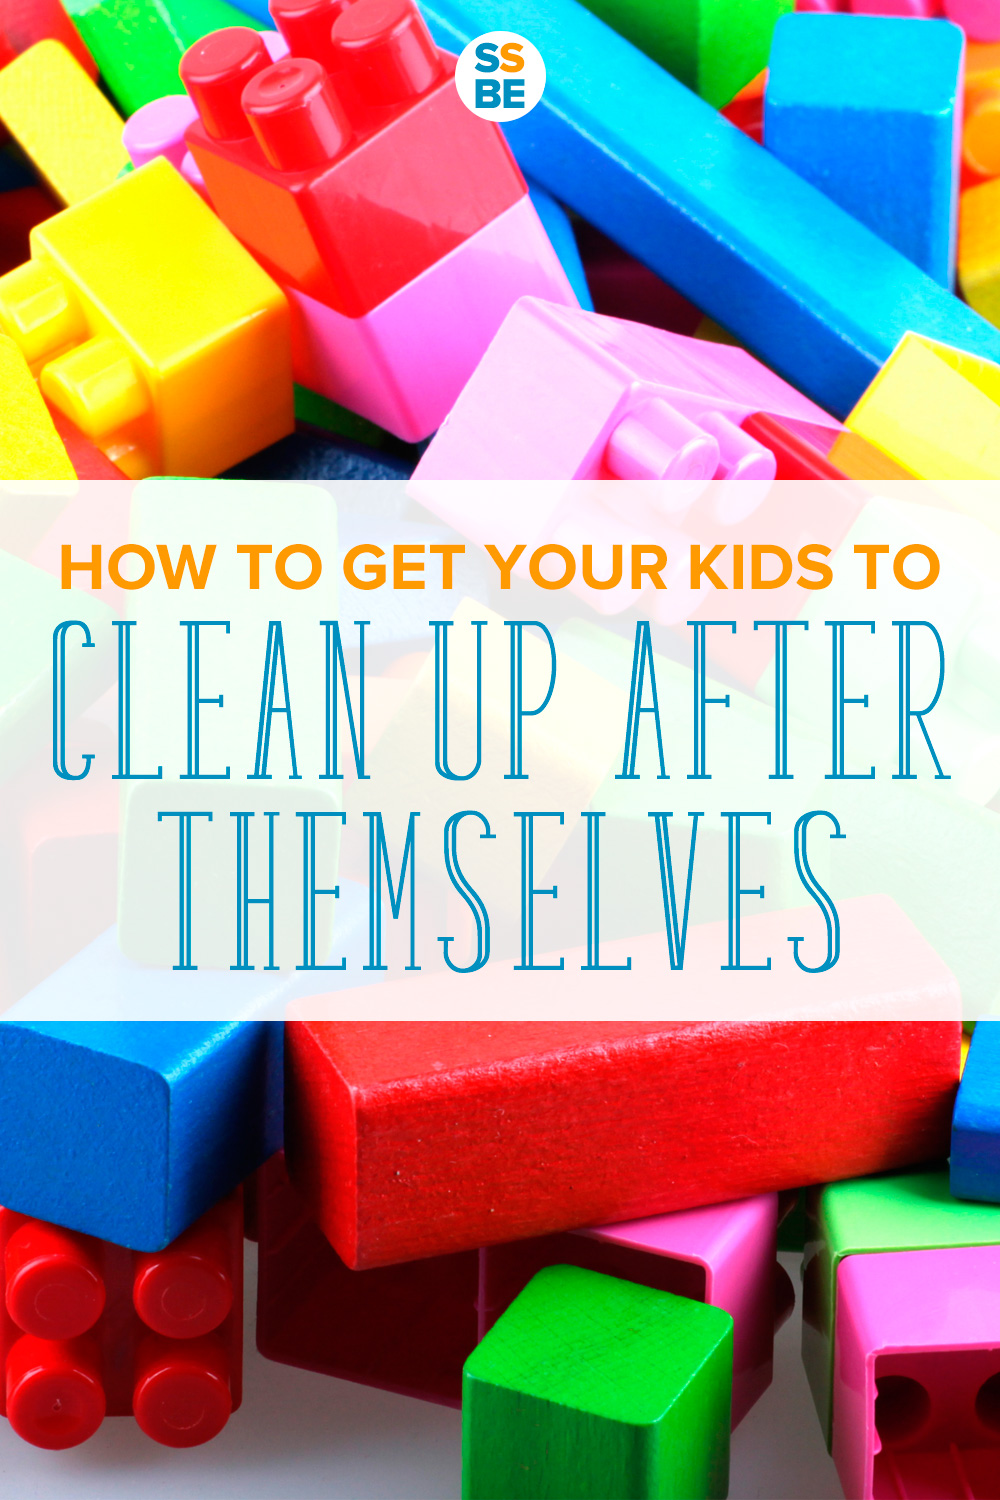 Lego pieces: how to get your kids to clean up after themselves